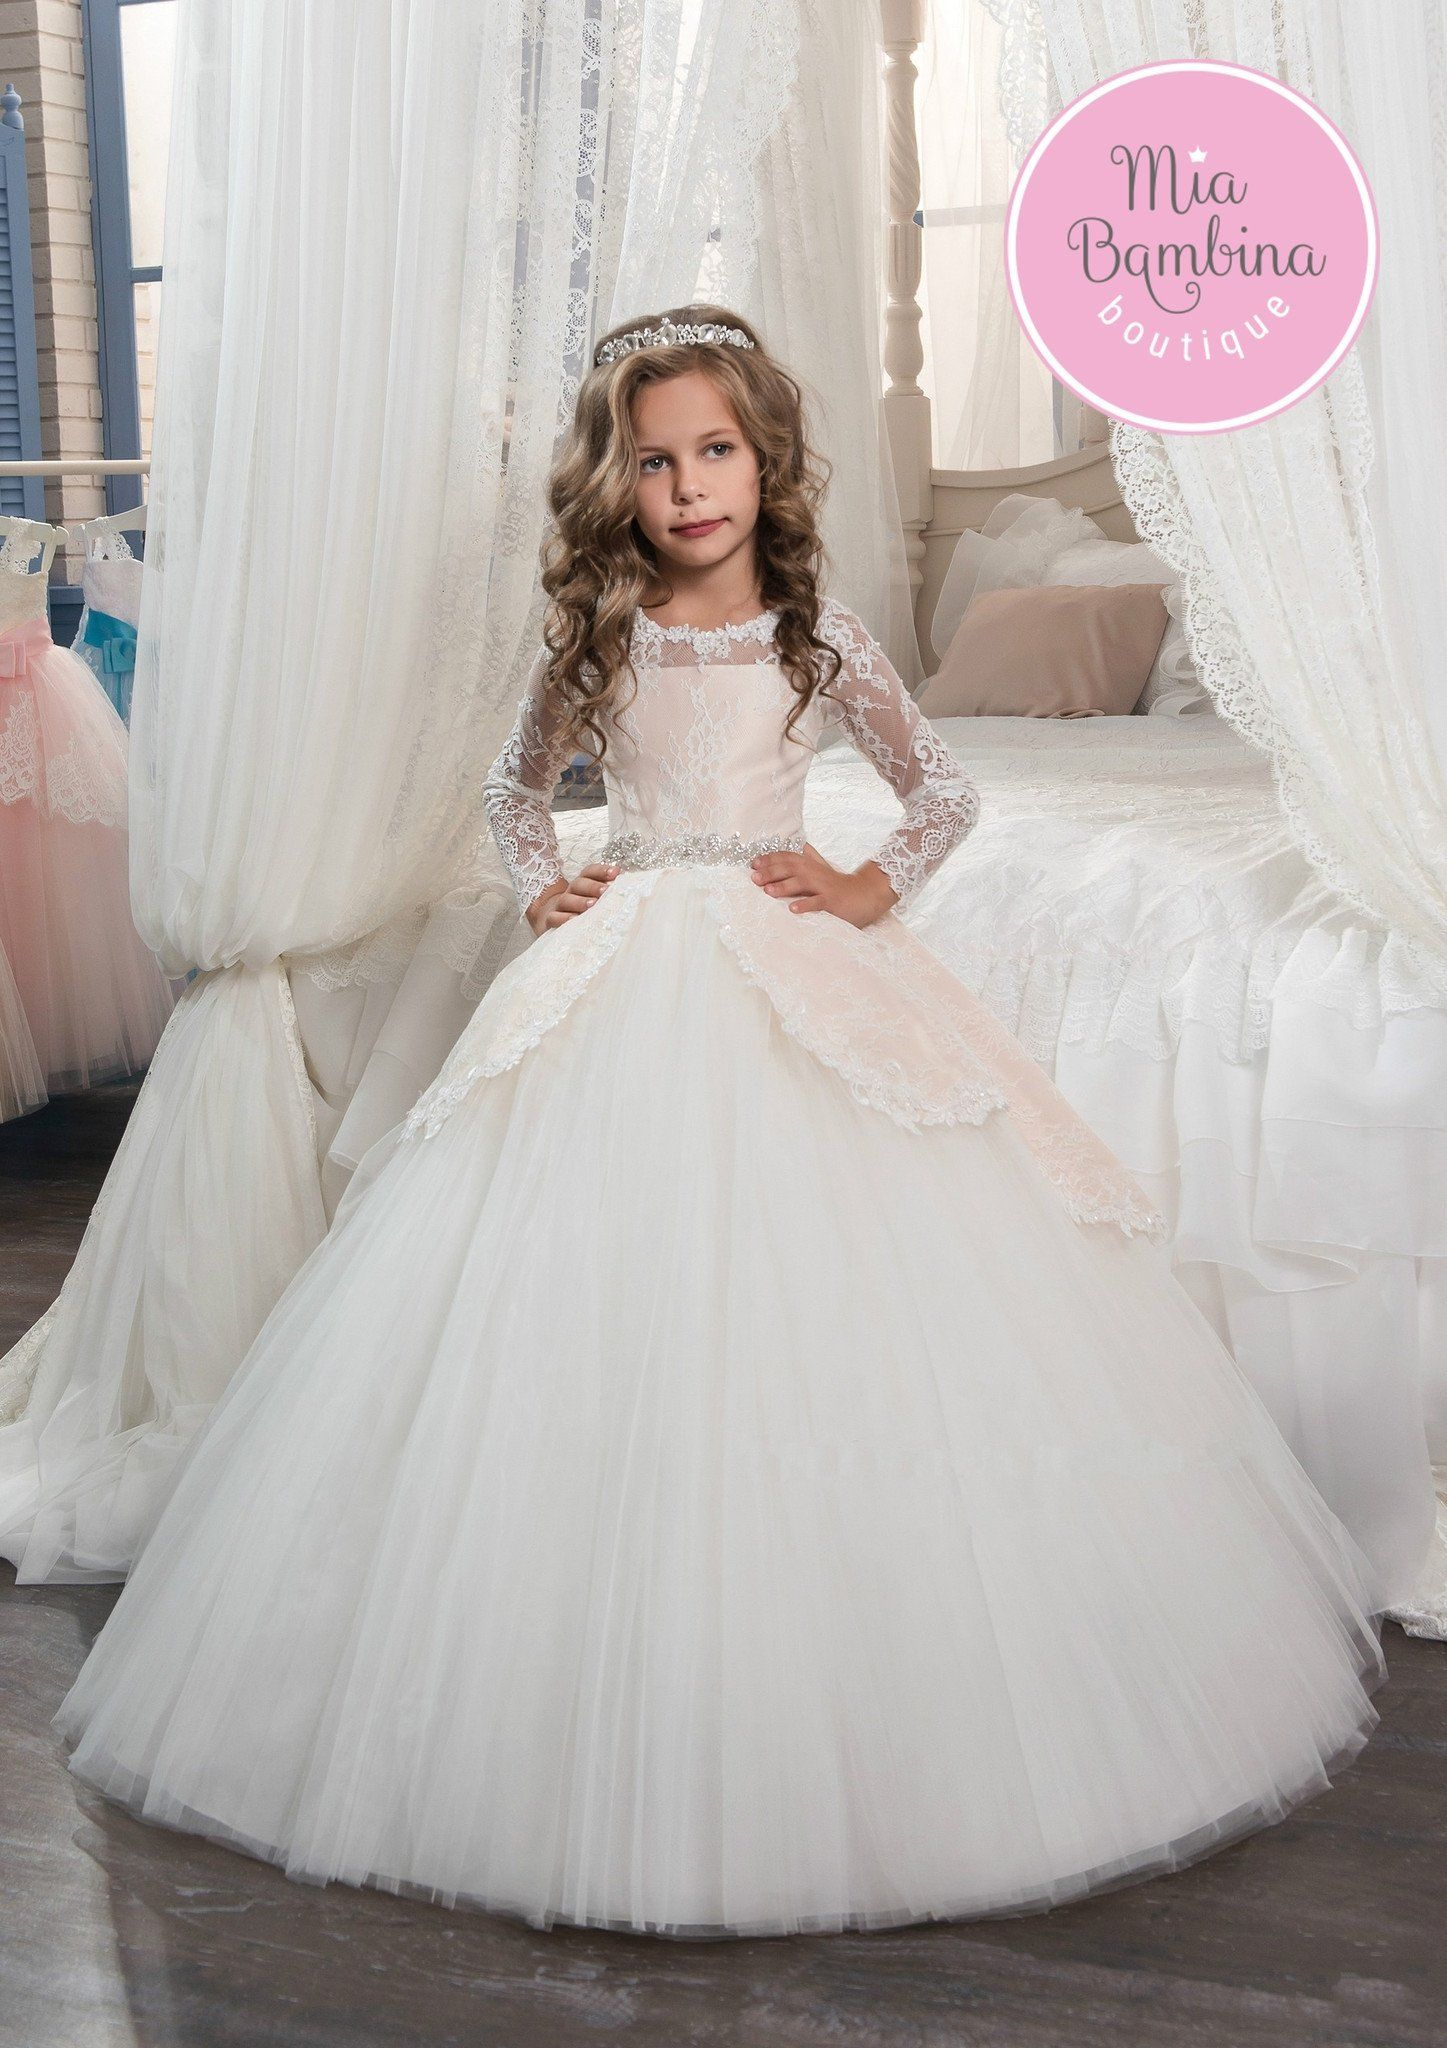 Gorgeous San Antonio junior bridesmaid dress makes a stunning impression  with its intricate lace over satin long sleeved bodice flowing into a  scalloped ... 15a48396f841